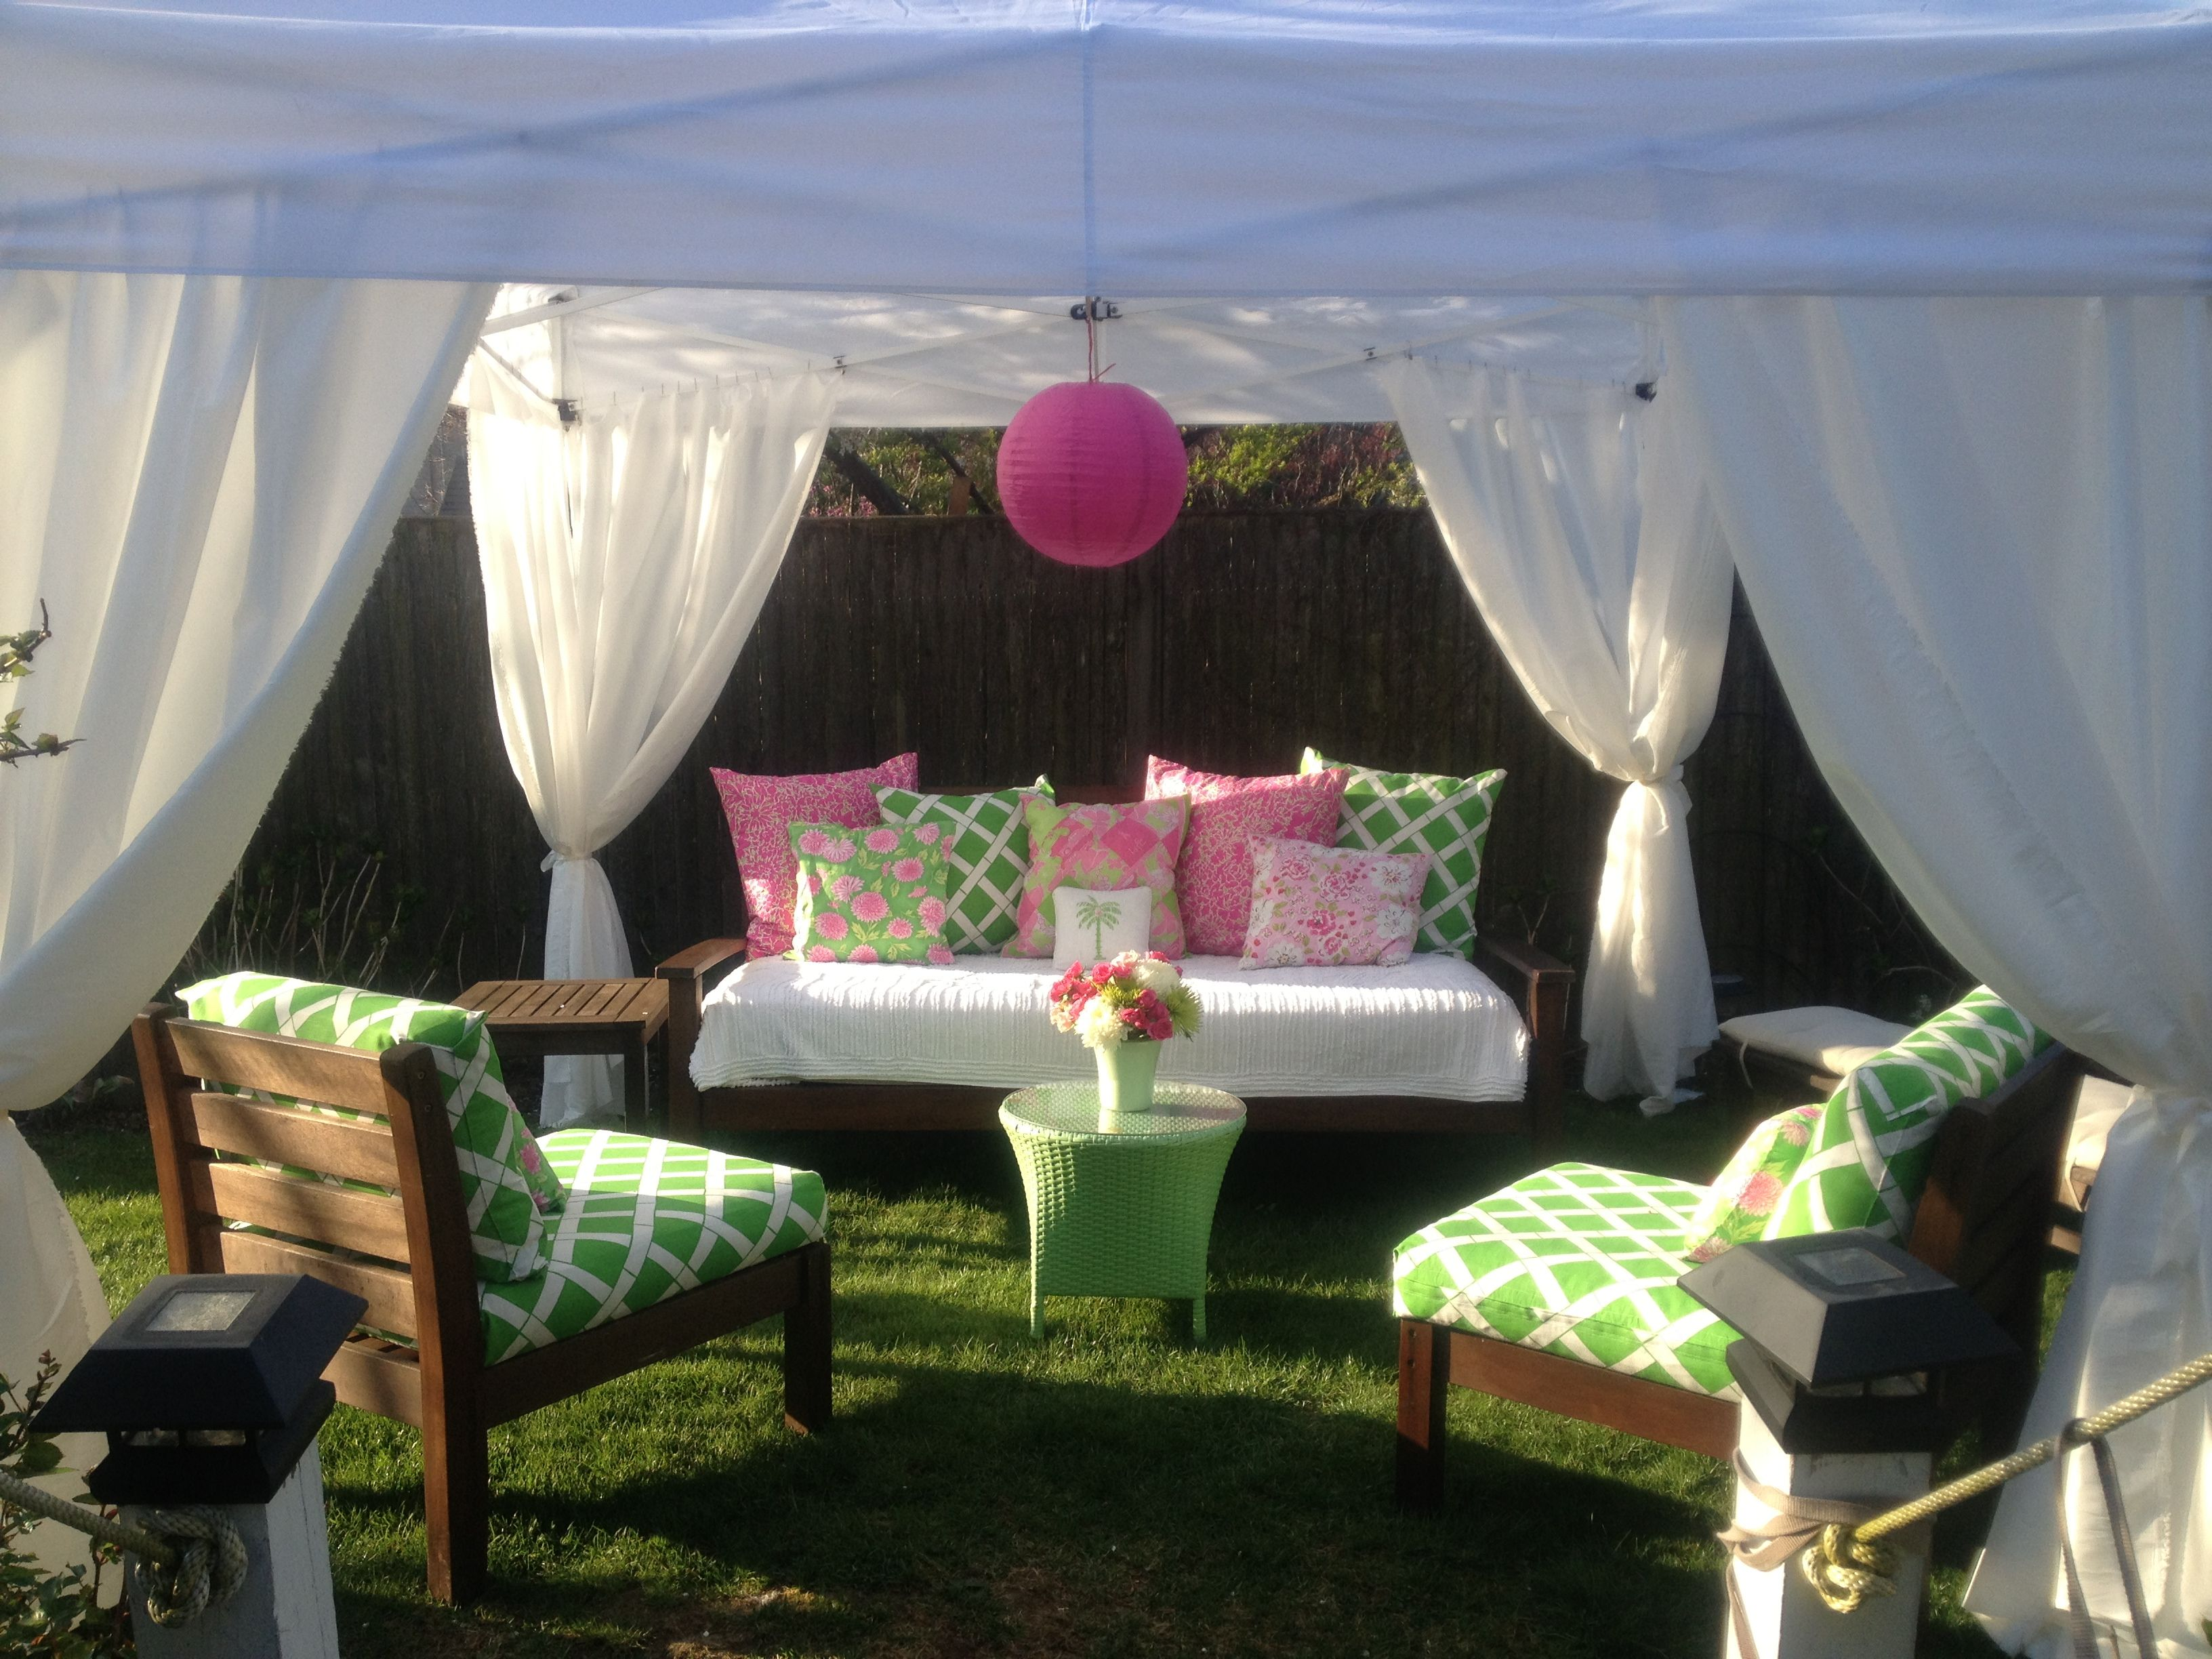 I added fabric to curtains on a simple ez up tent re for Outdoor party tent decorating ideas